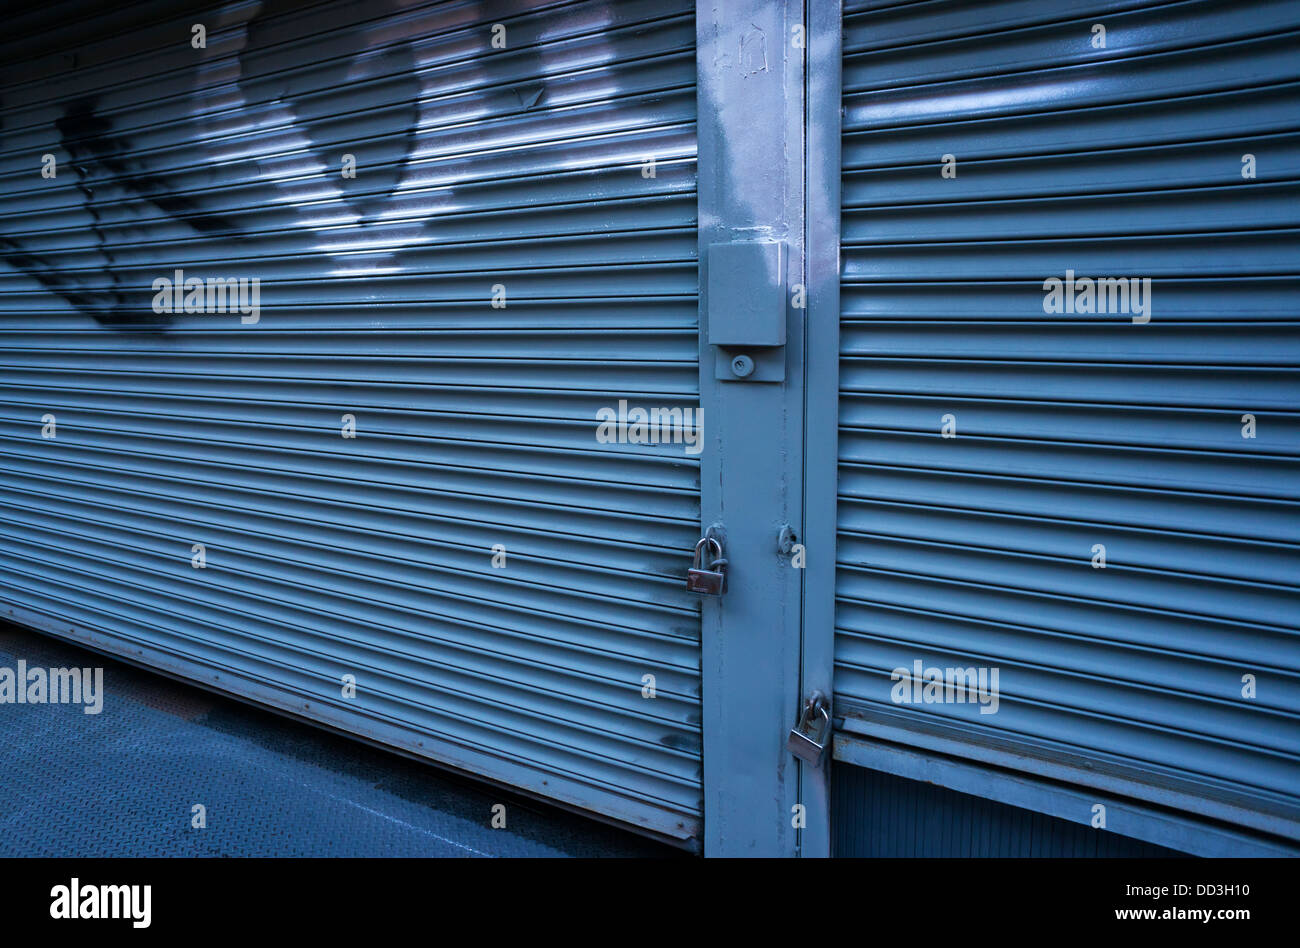 Store Metal Closed Store Stock Photos Closed Store Stock Images Alamy